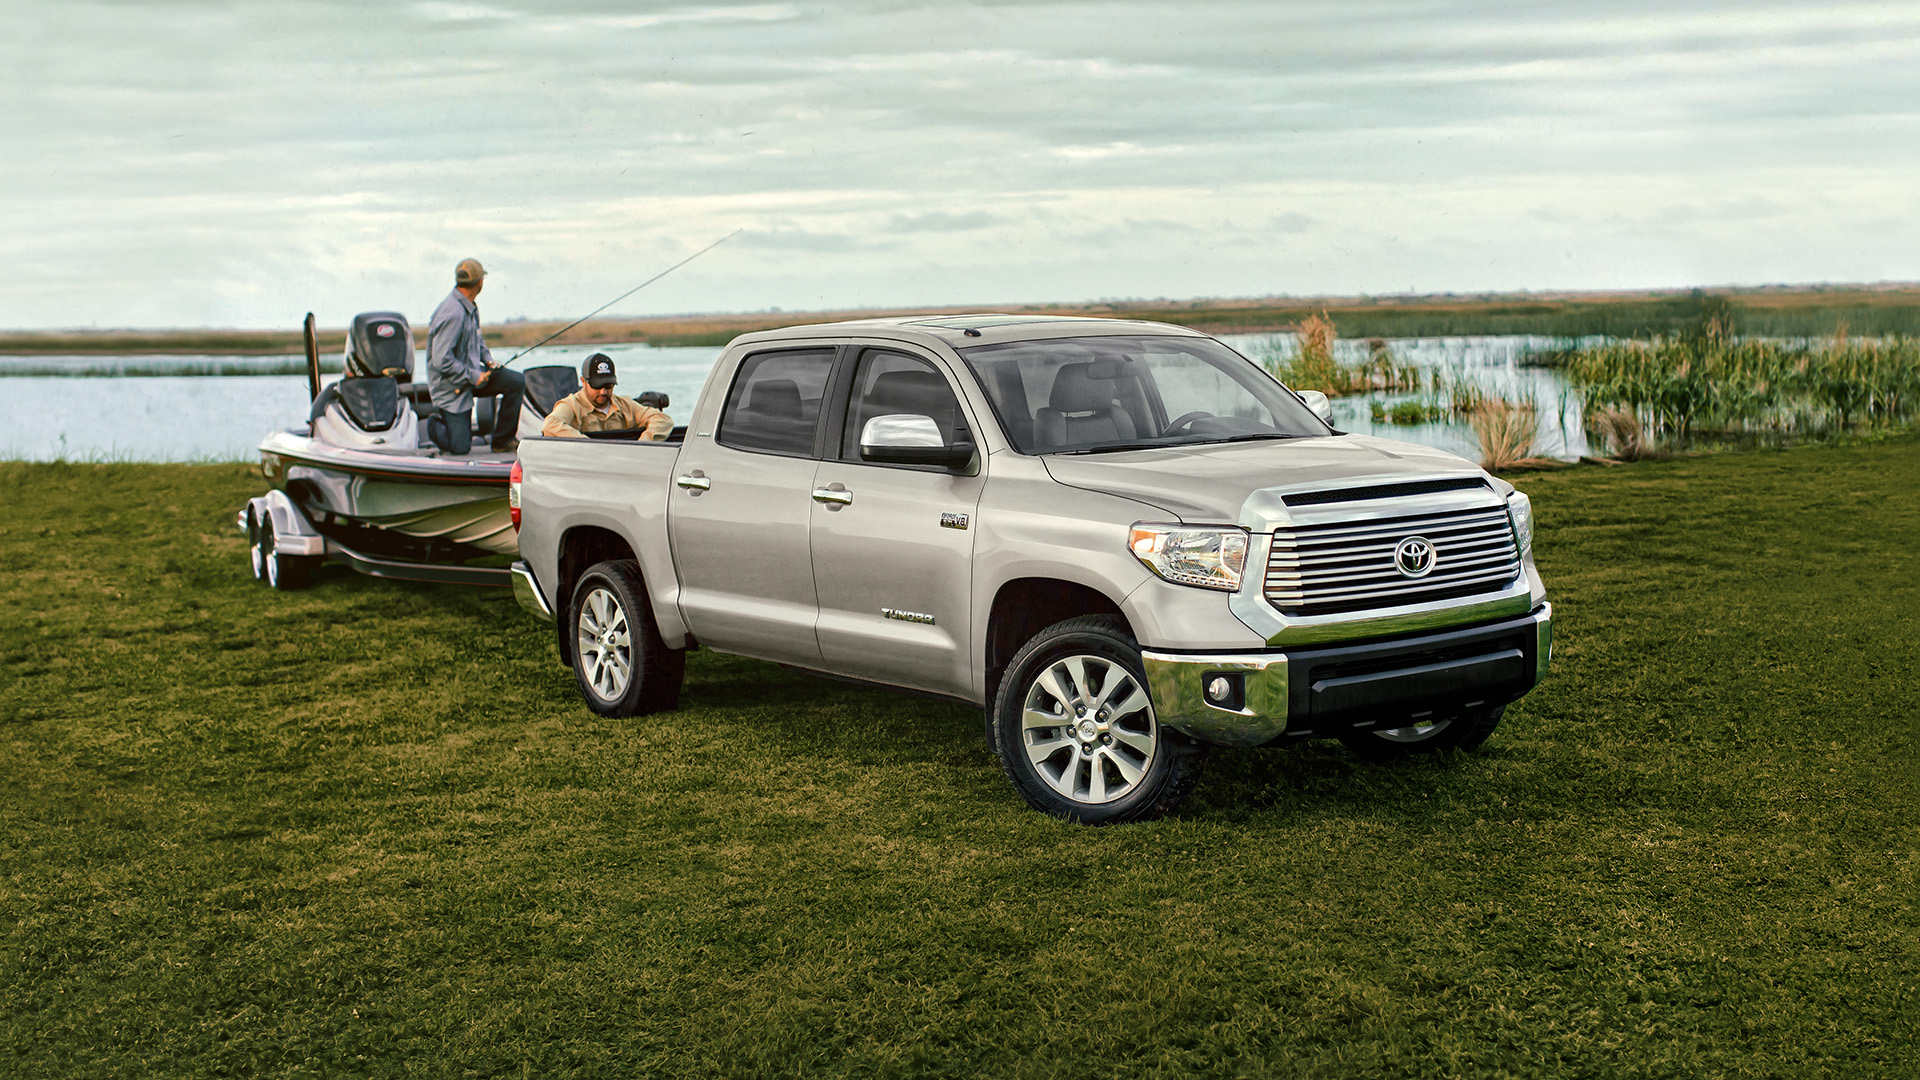 2017 Toyota Tundra Overview The News Wheel